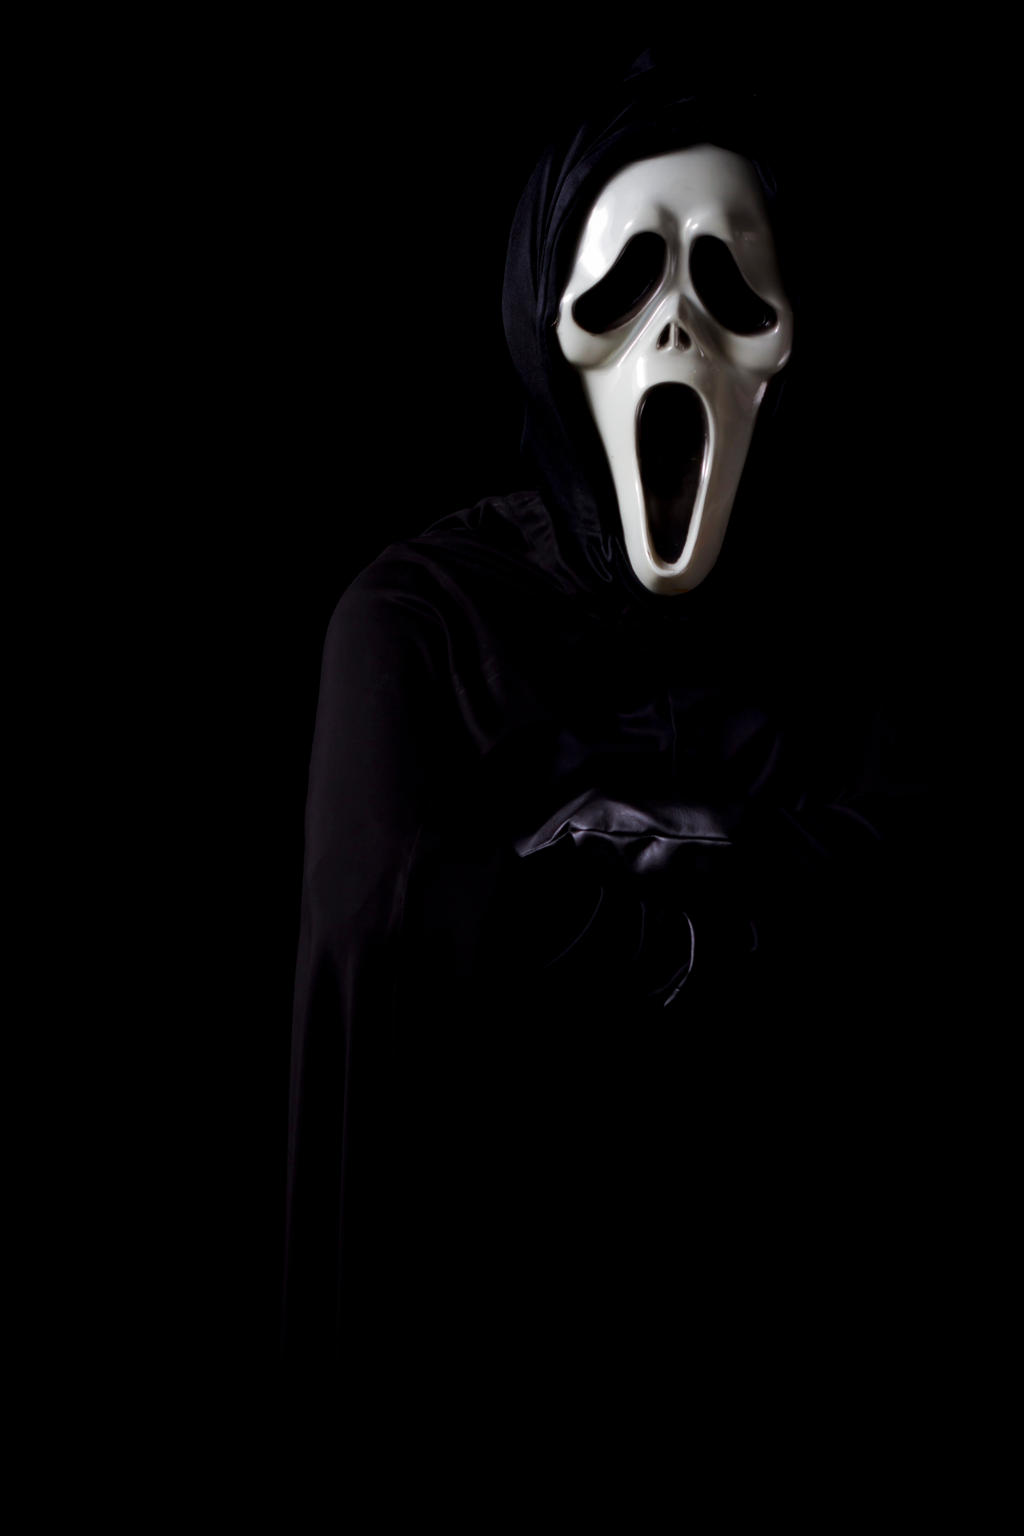 awesome 45 scream wallpapers - photo #13